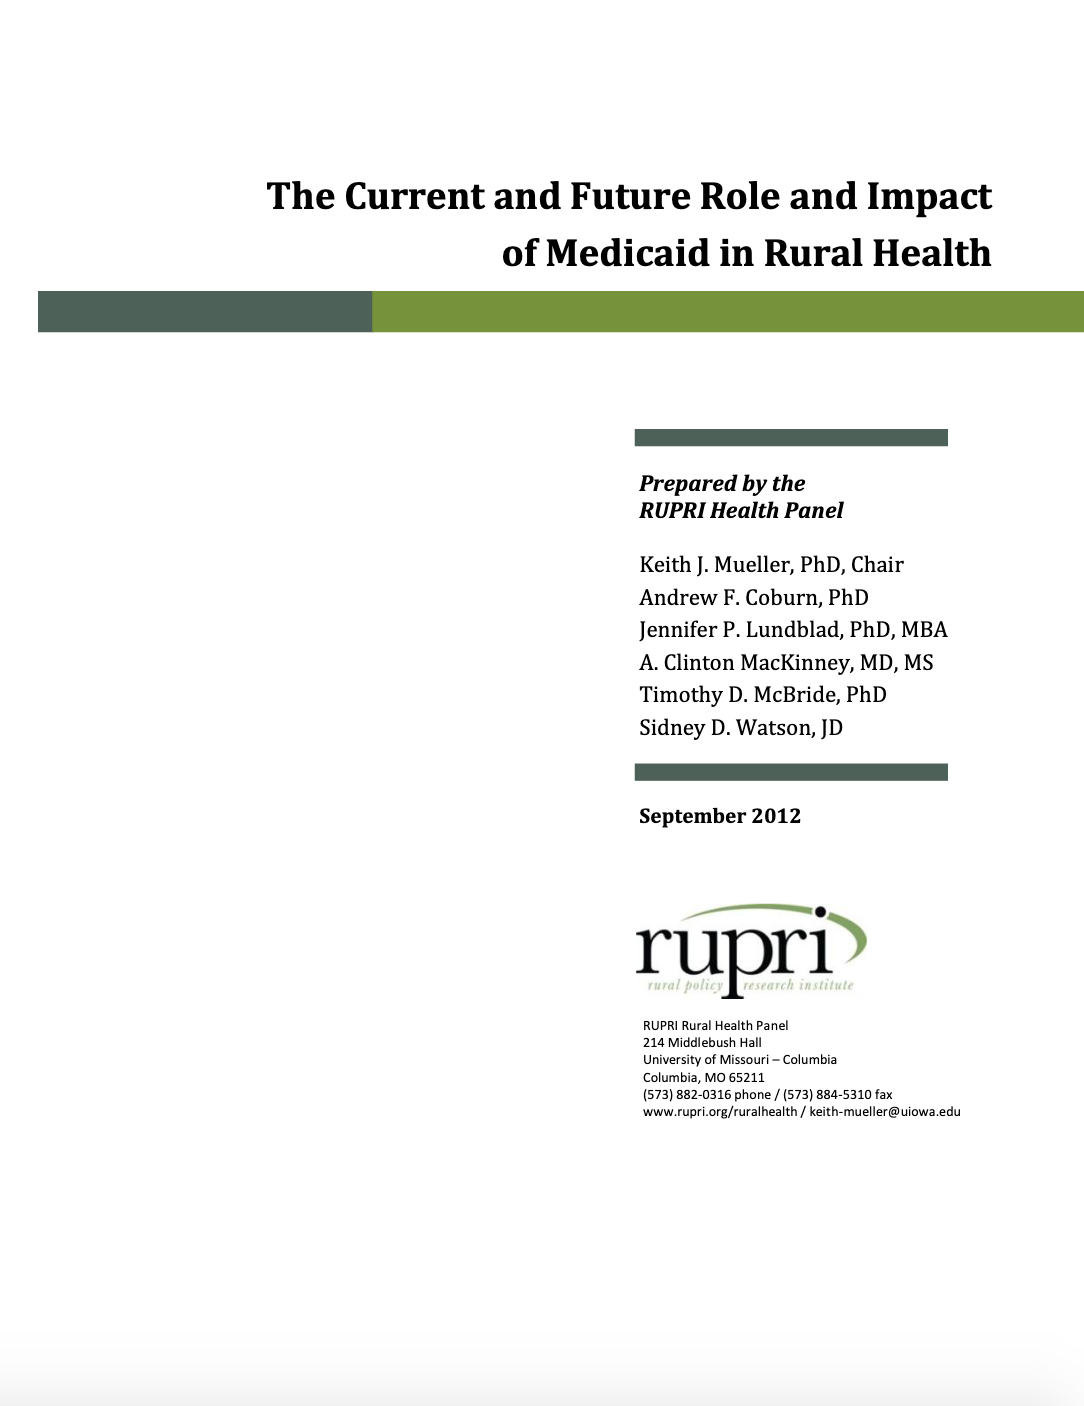 Current and Future Role and Impact of Medicaid in Rural Health (Cover Image)